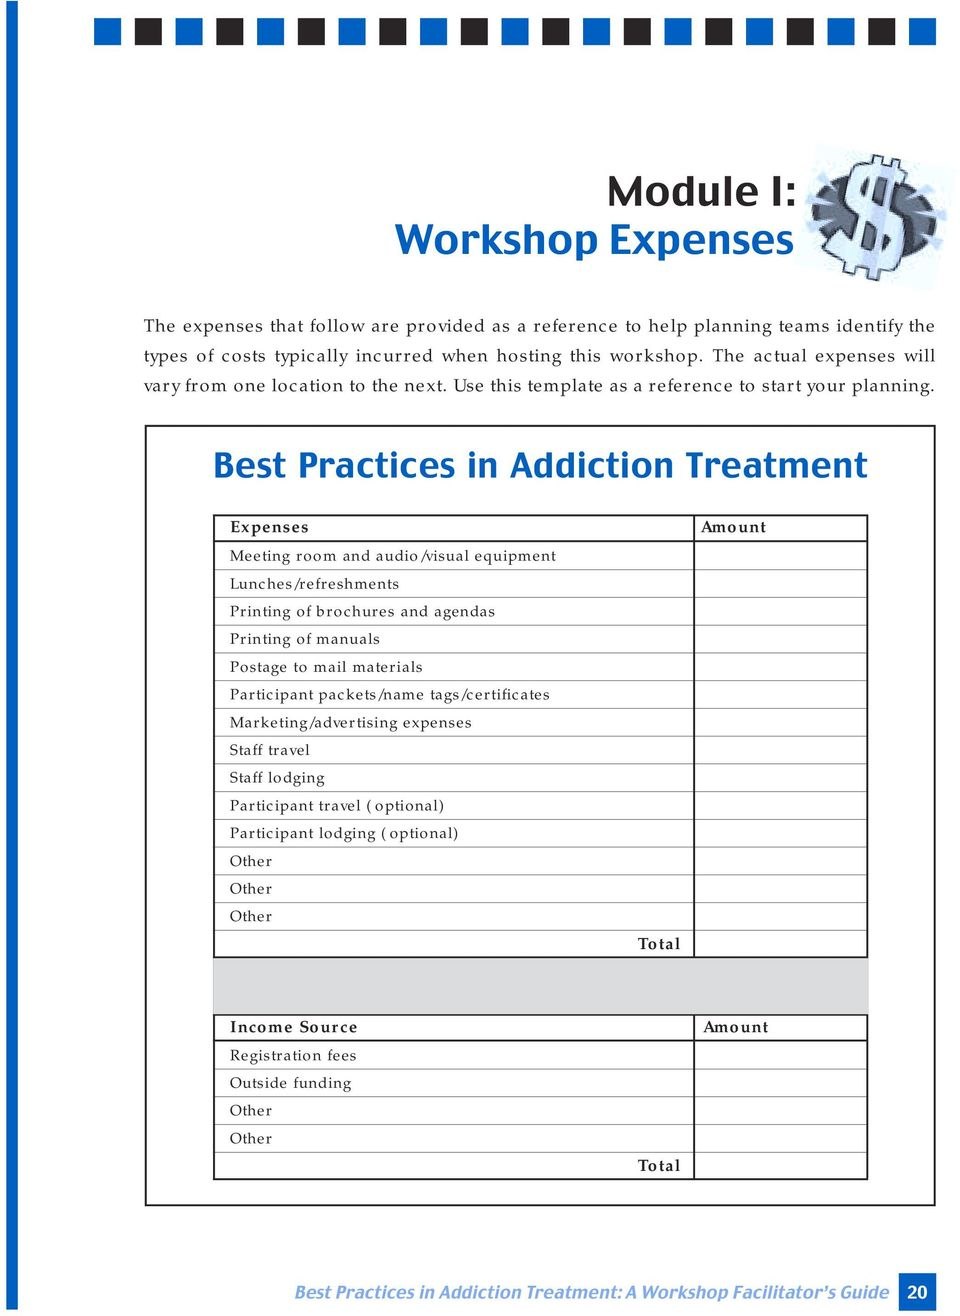 Best Practices in Addiction Treatment Expenses Meeting room and audio/visual equipment Lunches/refreshments Printing of brochures and agendas Printing of manuals Postage to mail materials Participant